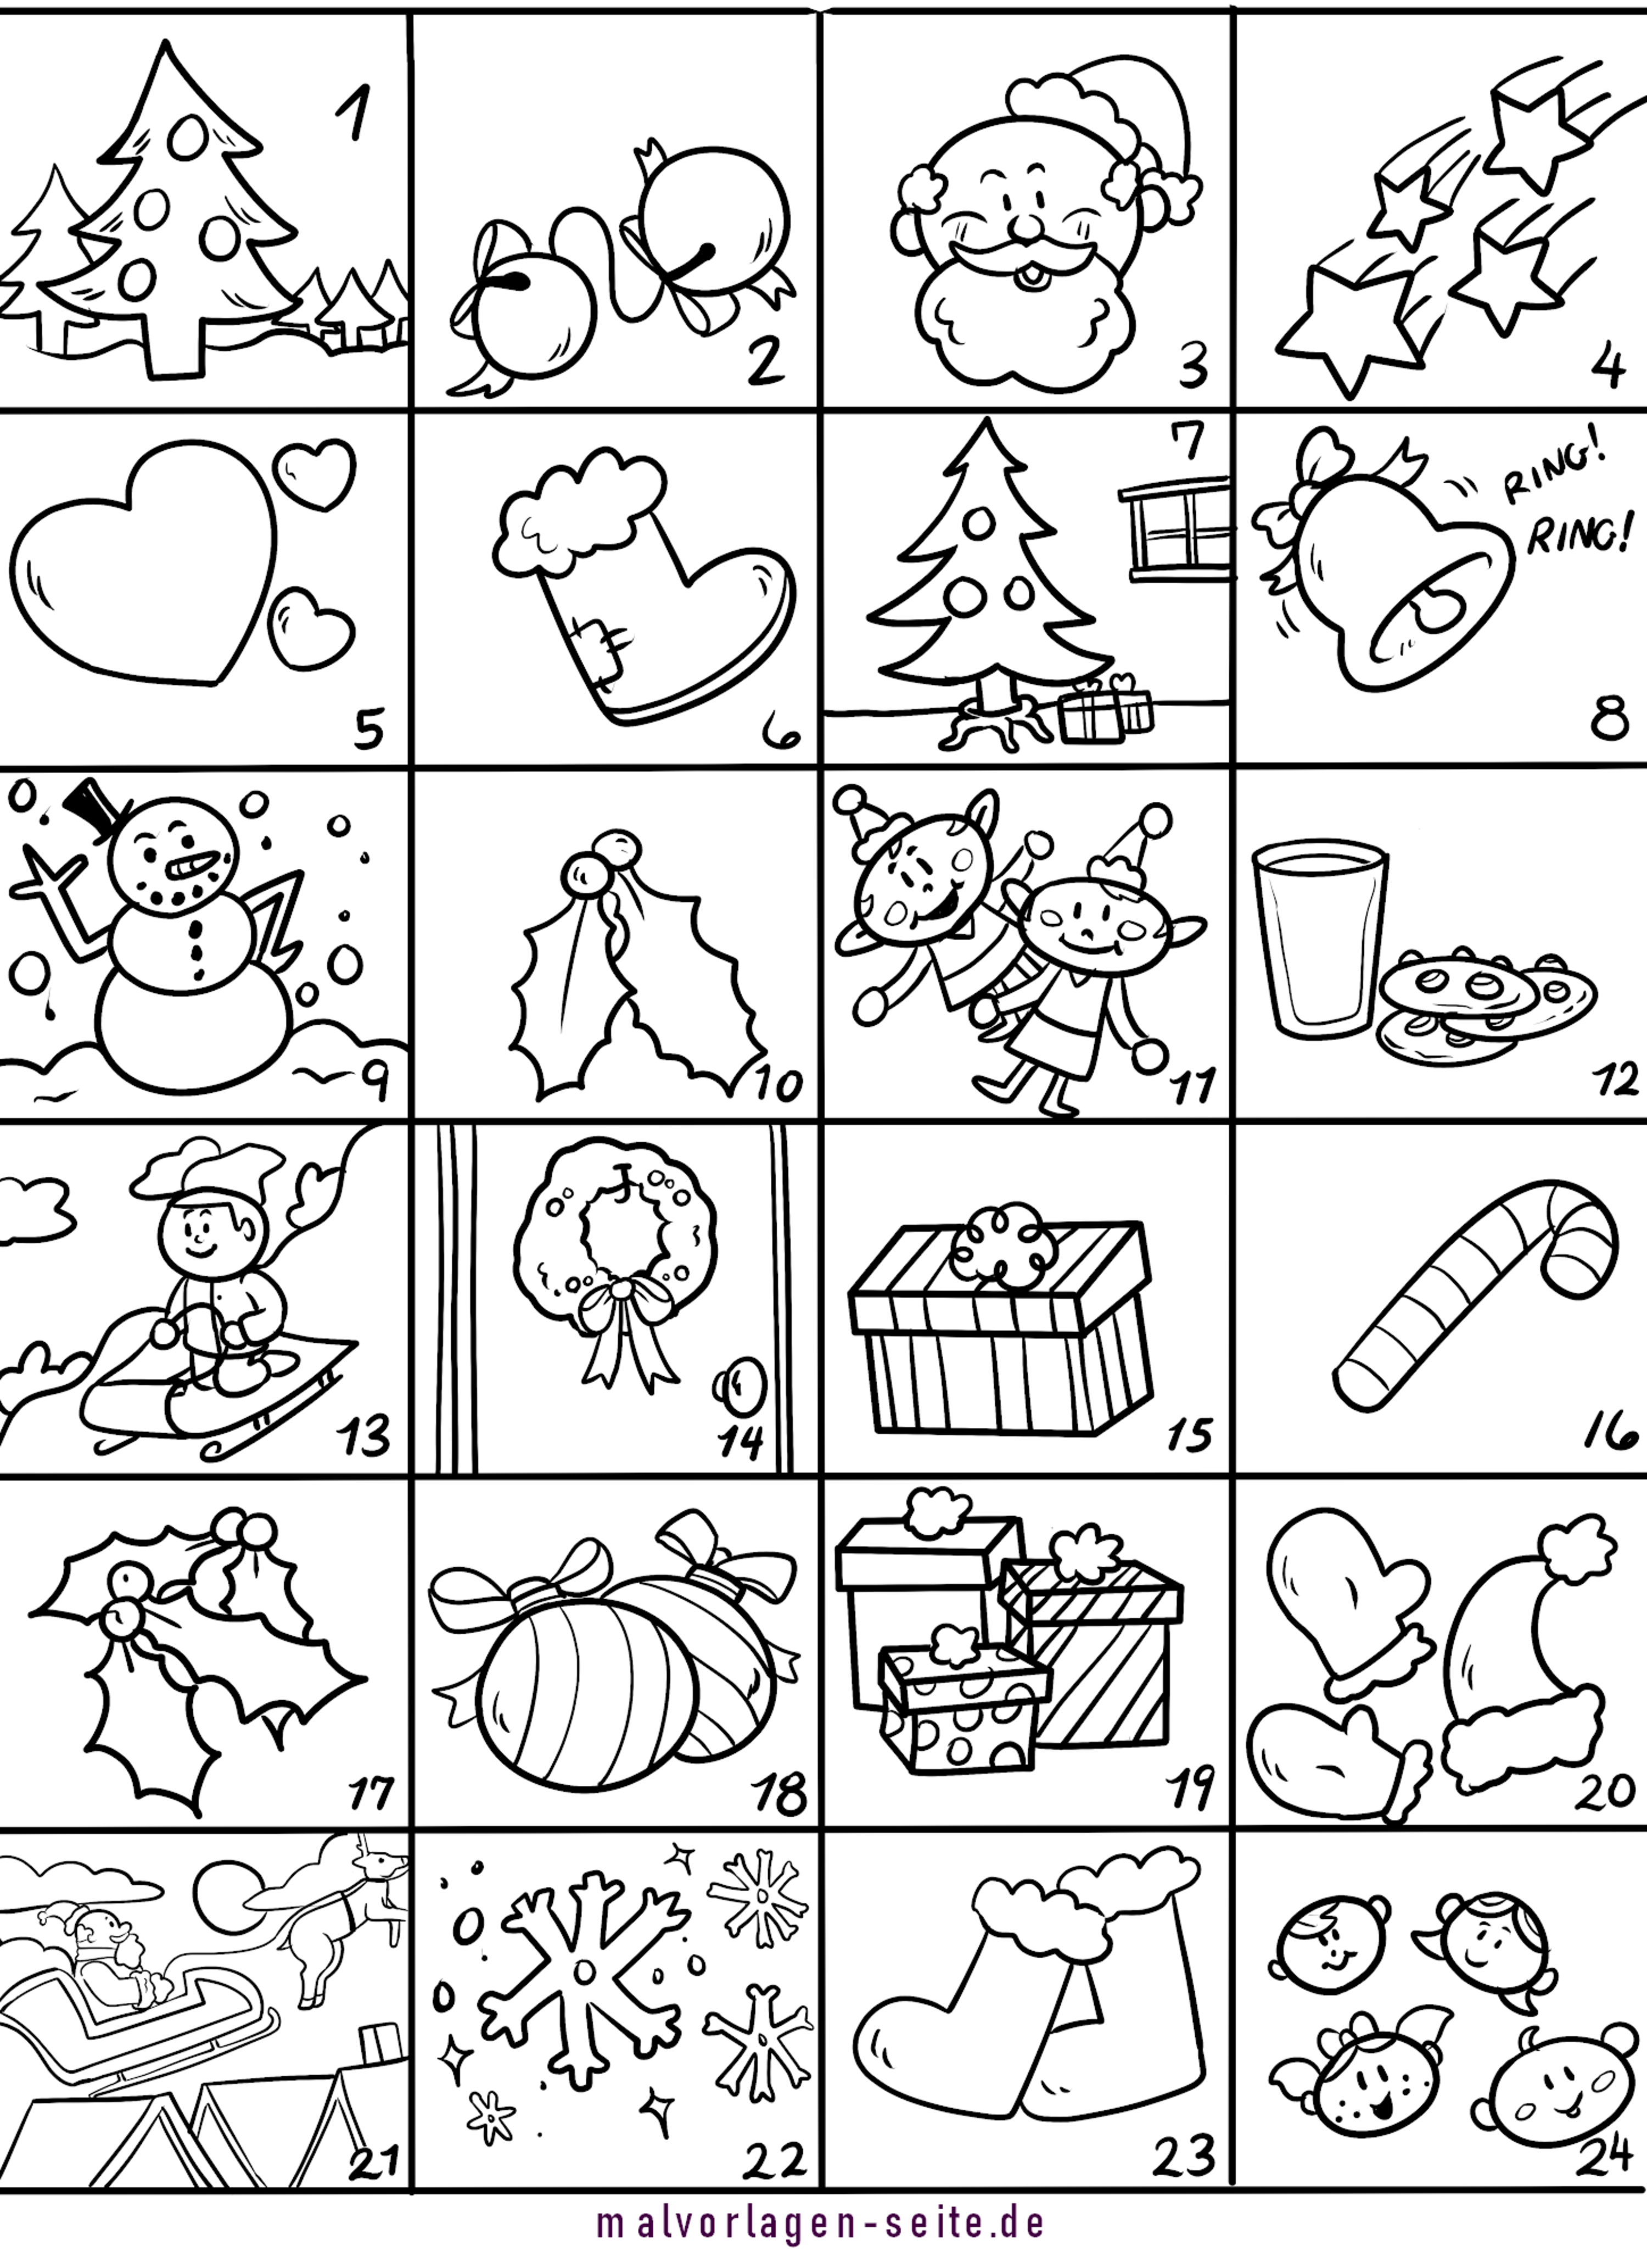 Advent calendar template for coloring and handicrafts